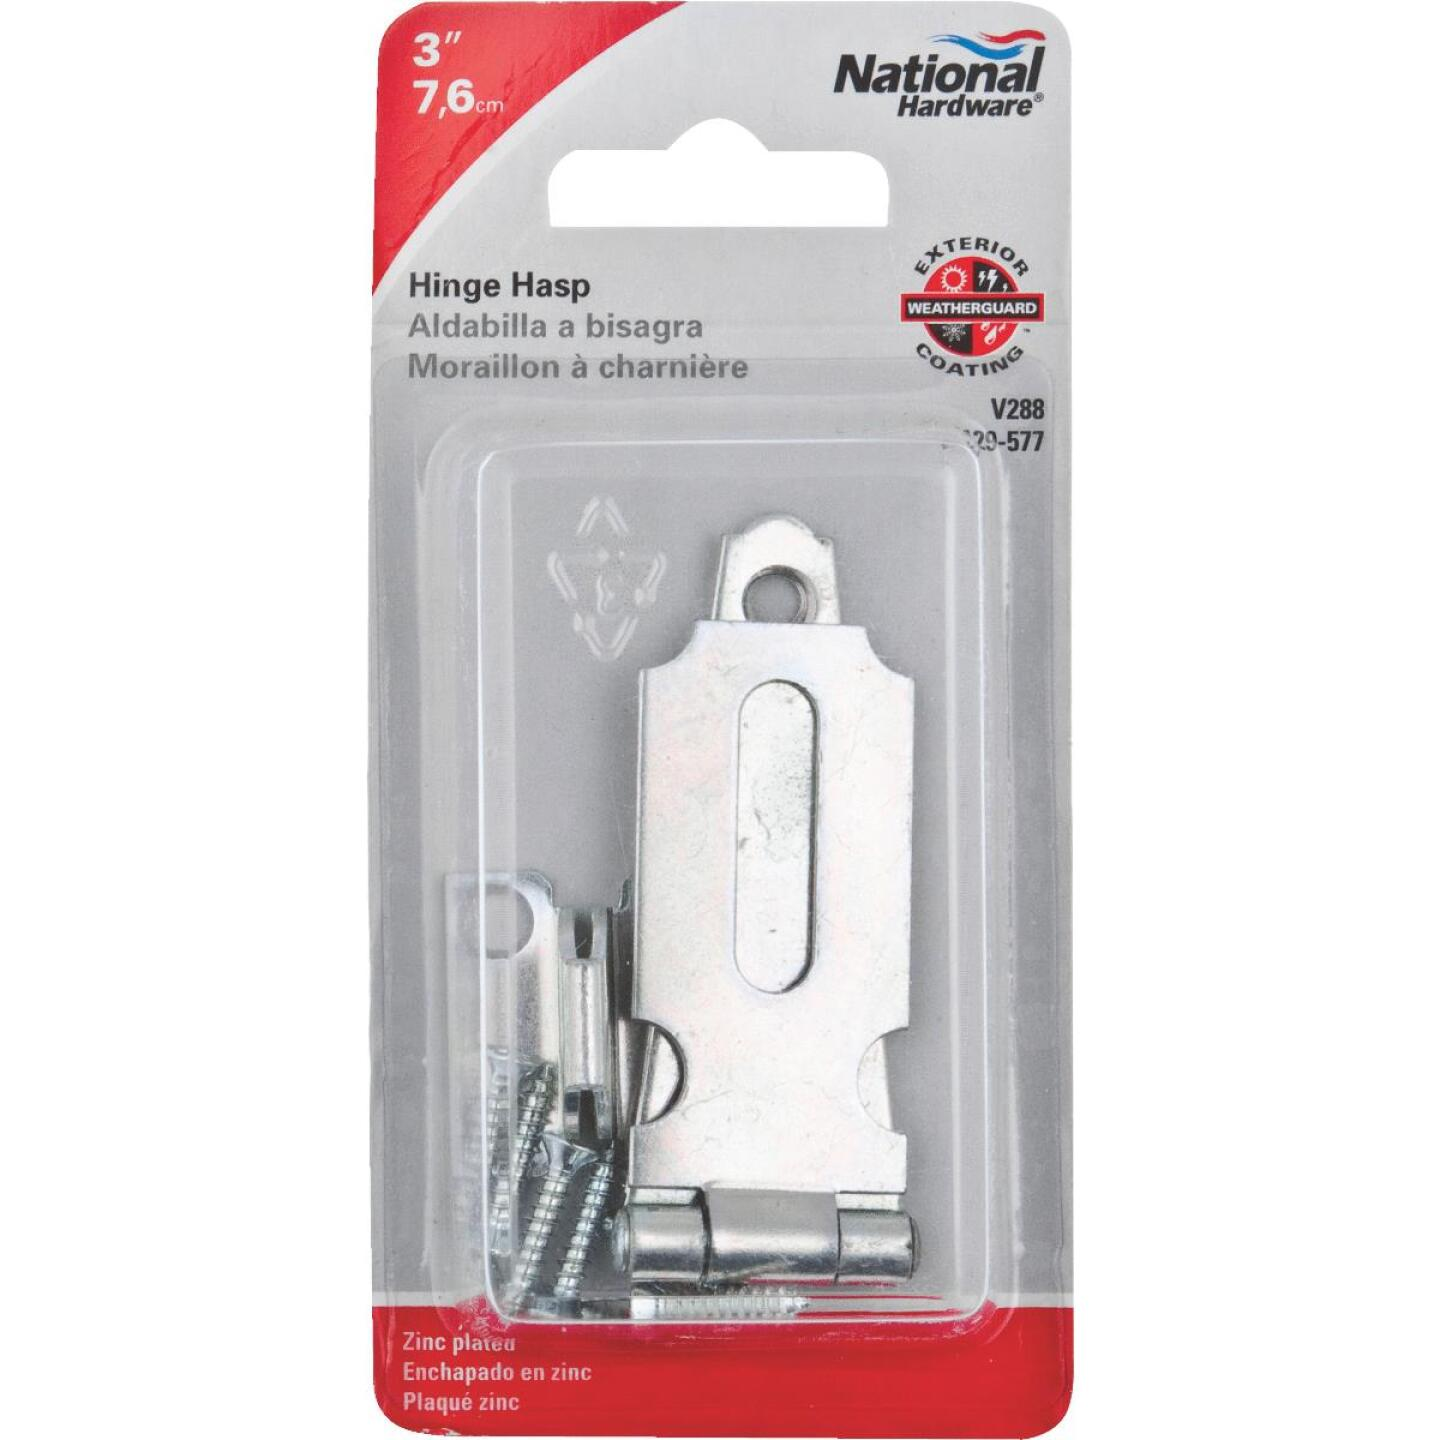 National 3 In. Steel Hinge Hasps Image 2